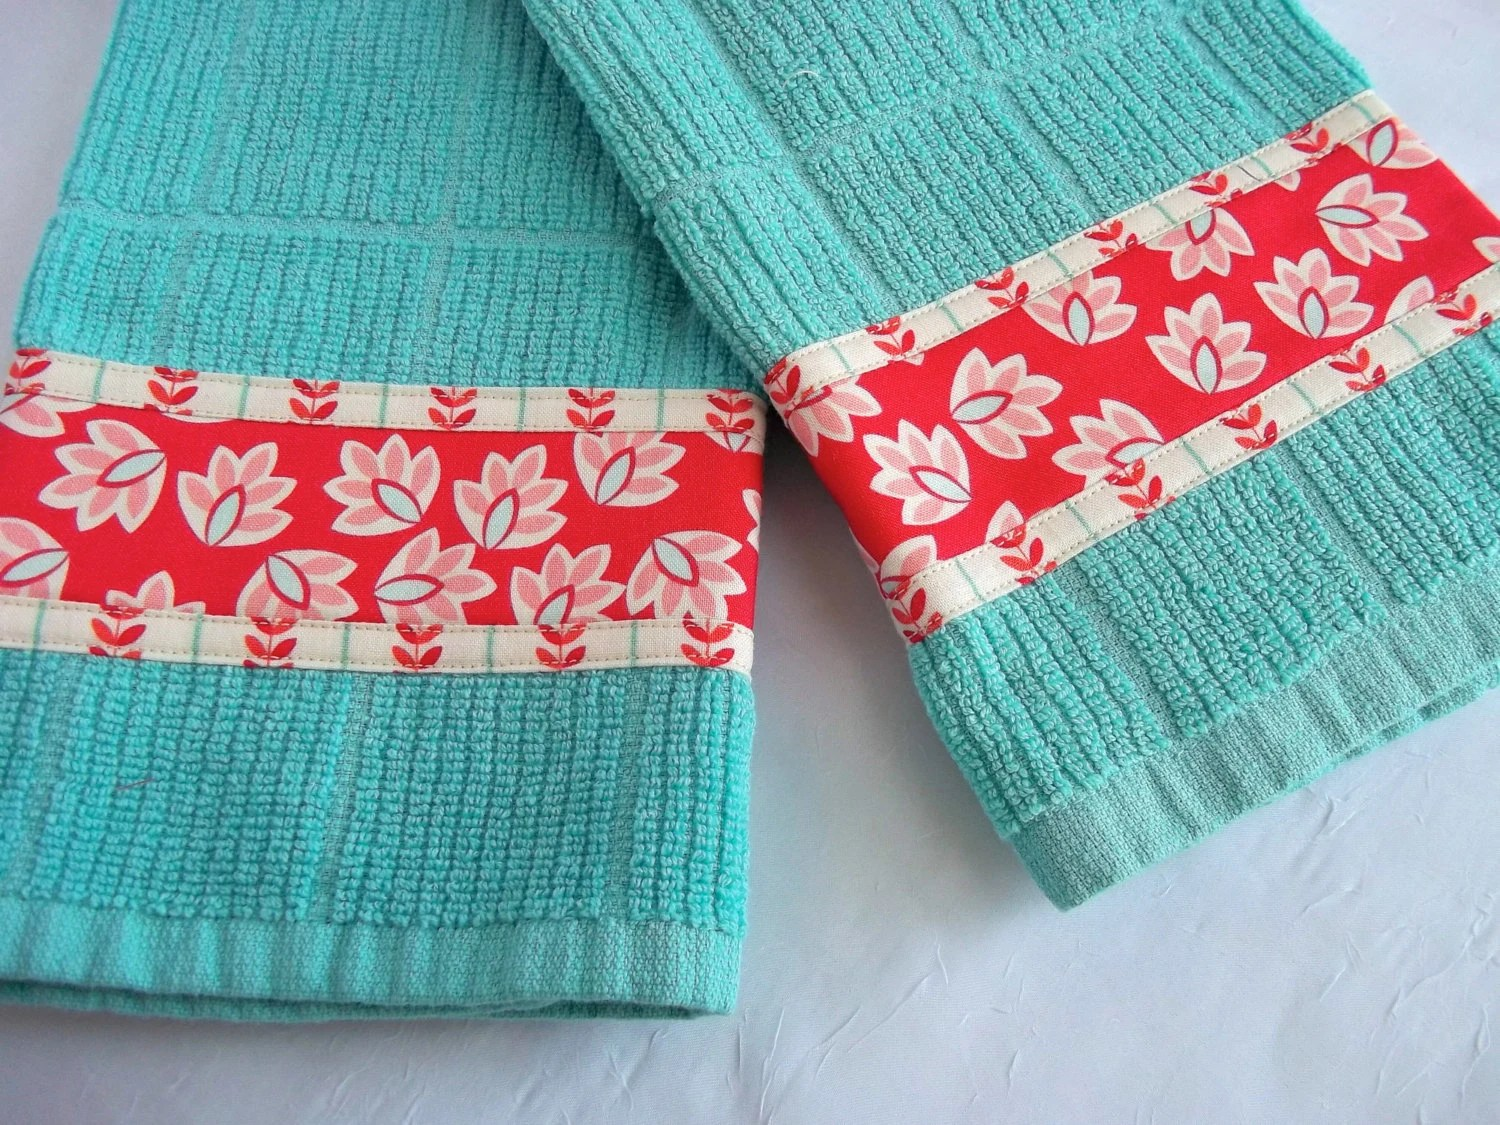 Turquoise Tea Towels Hand Decorated Kitchen Towels Set of